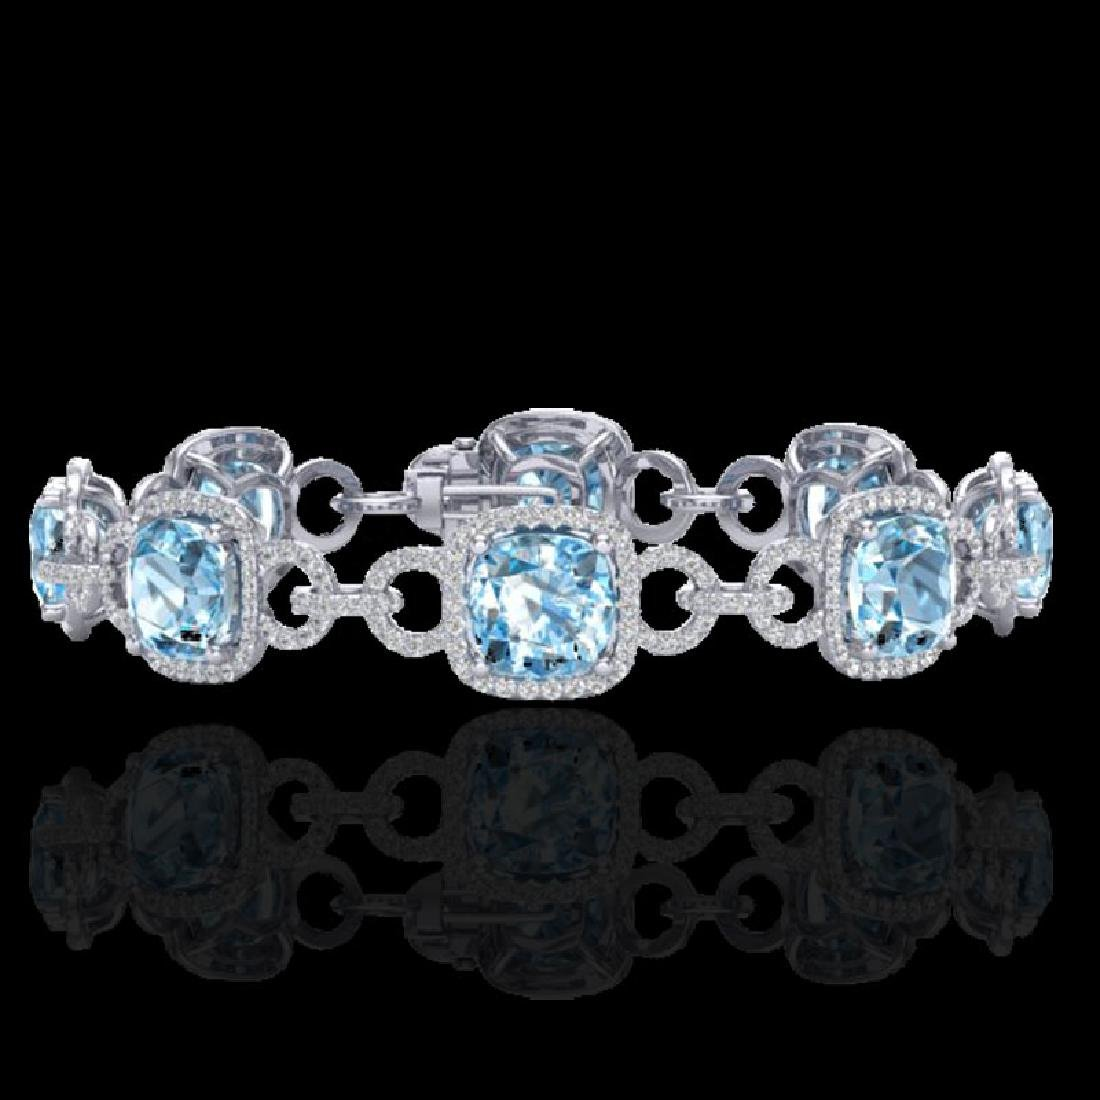 30 CTW Topaz & Micro VS/SI Diamond Bracelet 14K White